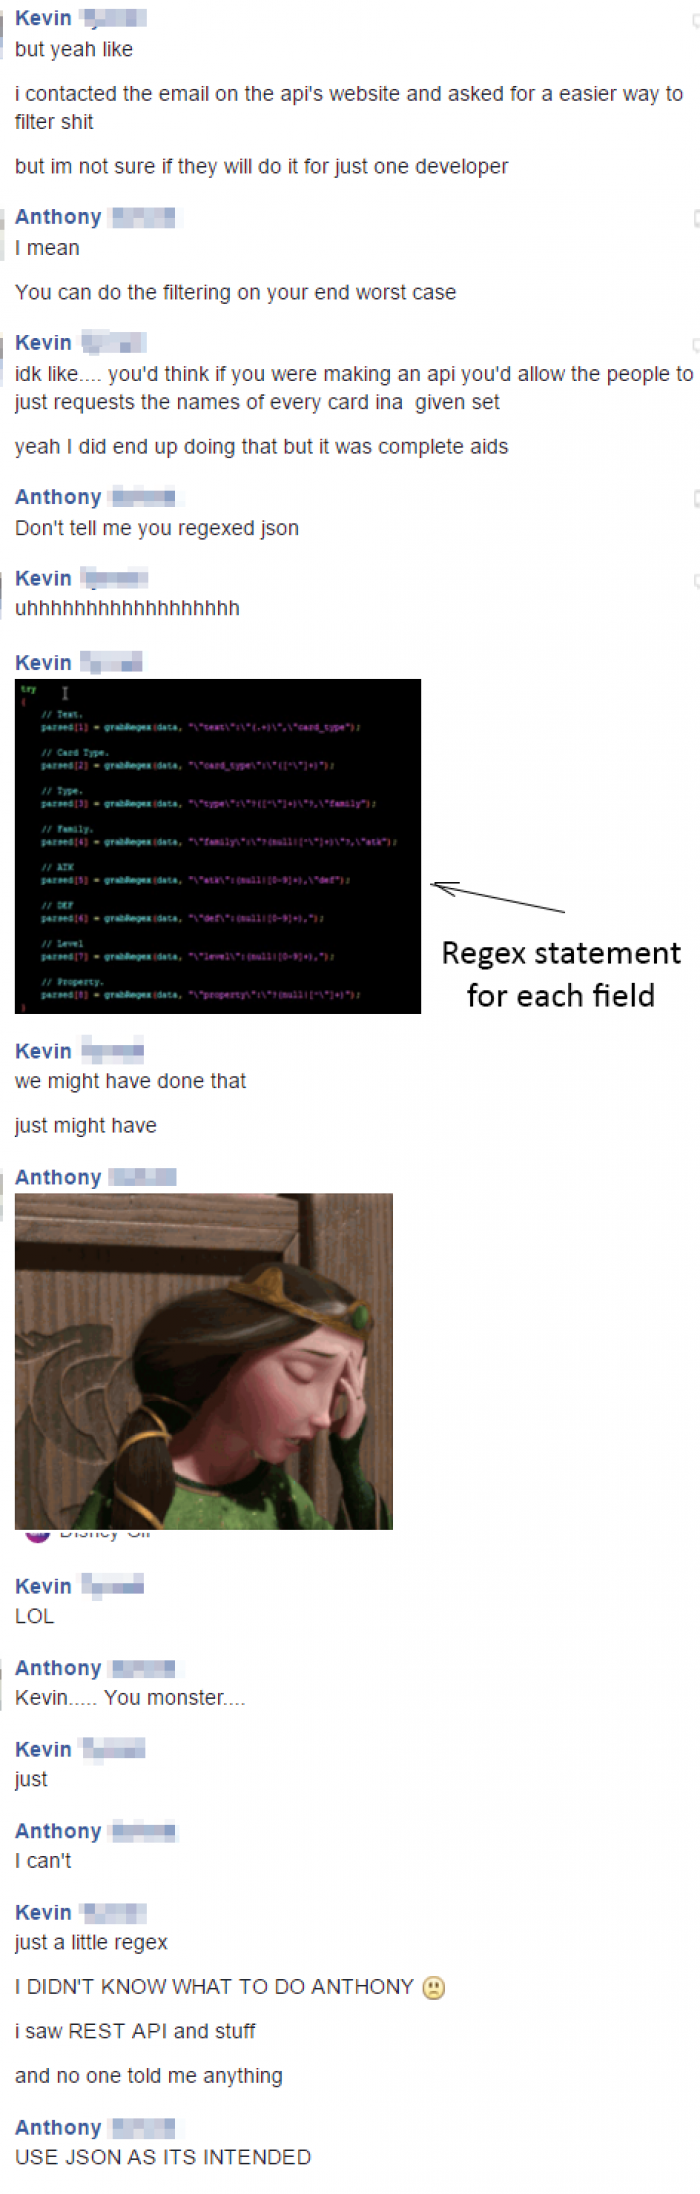 My tutor was not happy when I used regex to parse through JSON